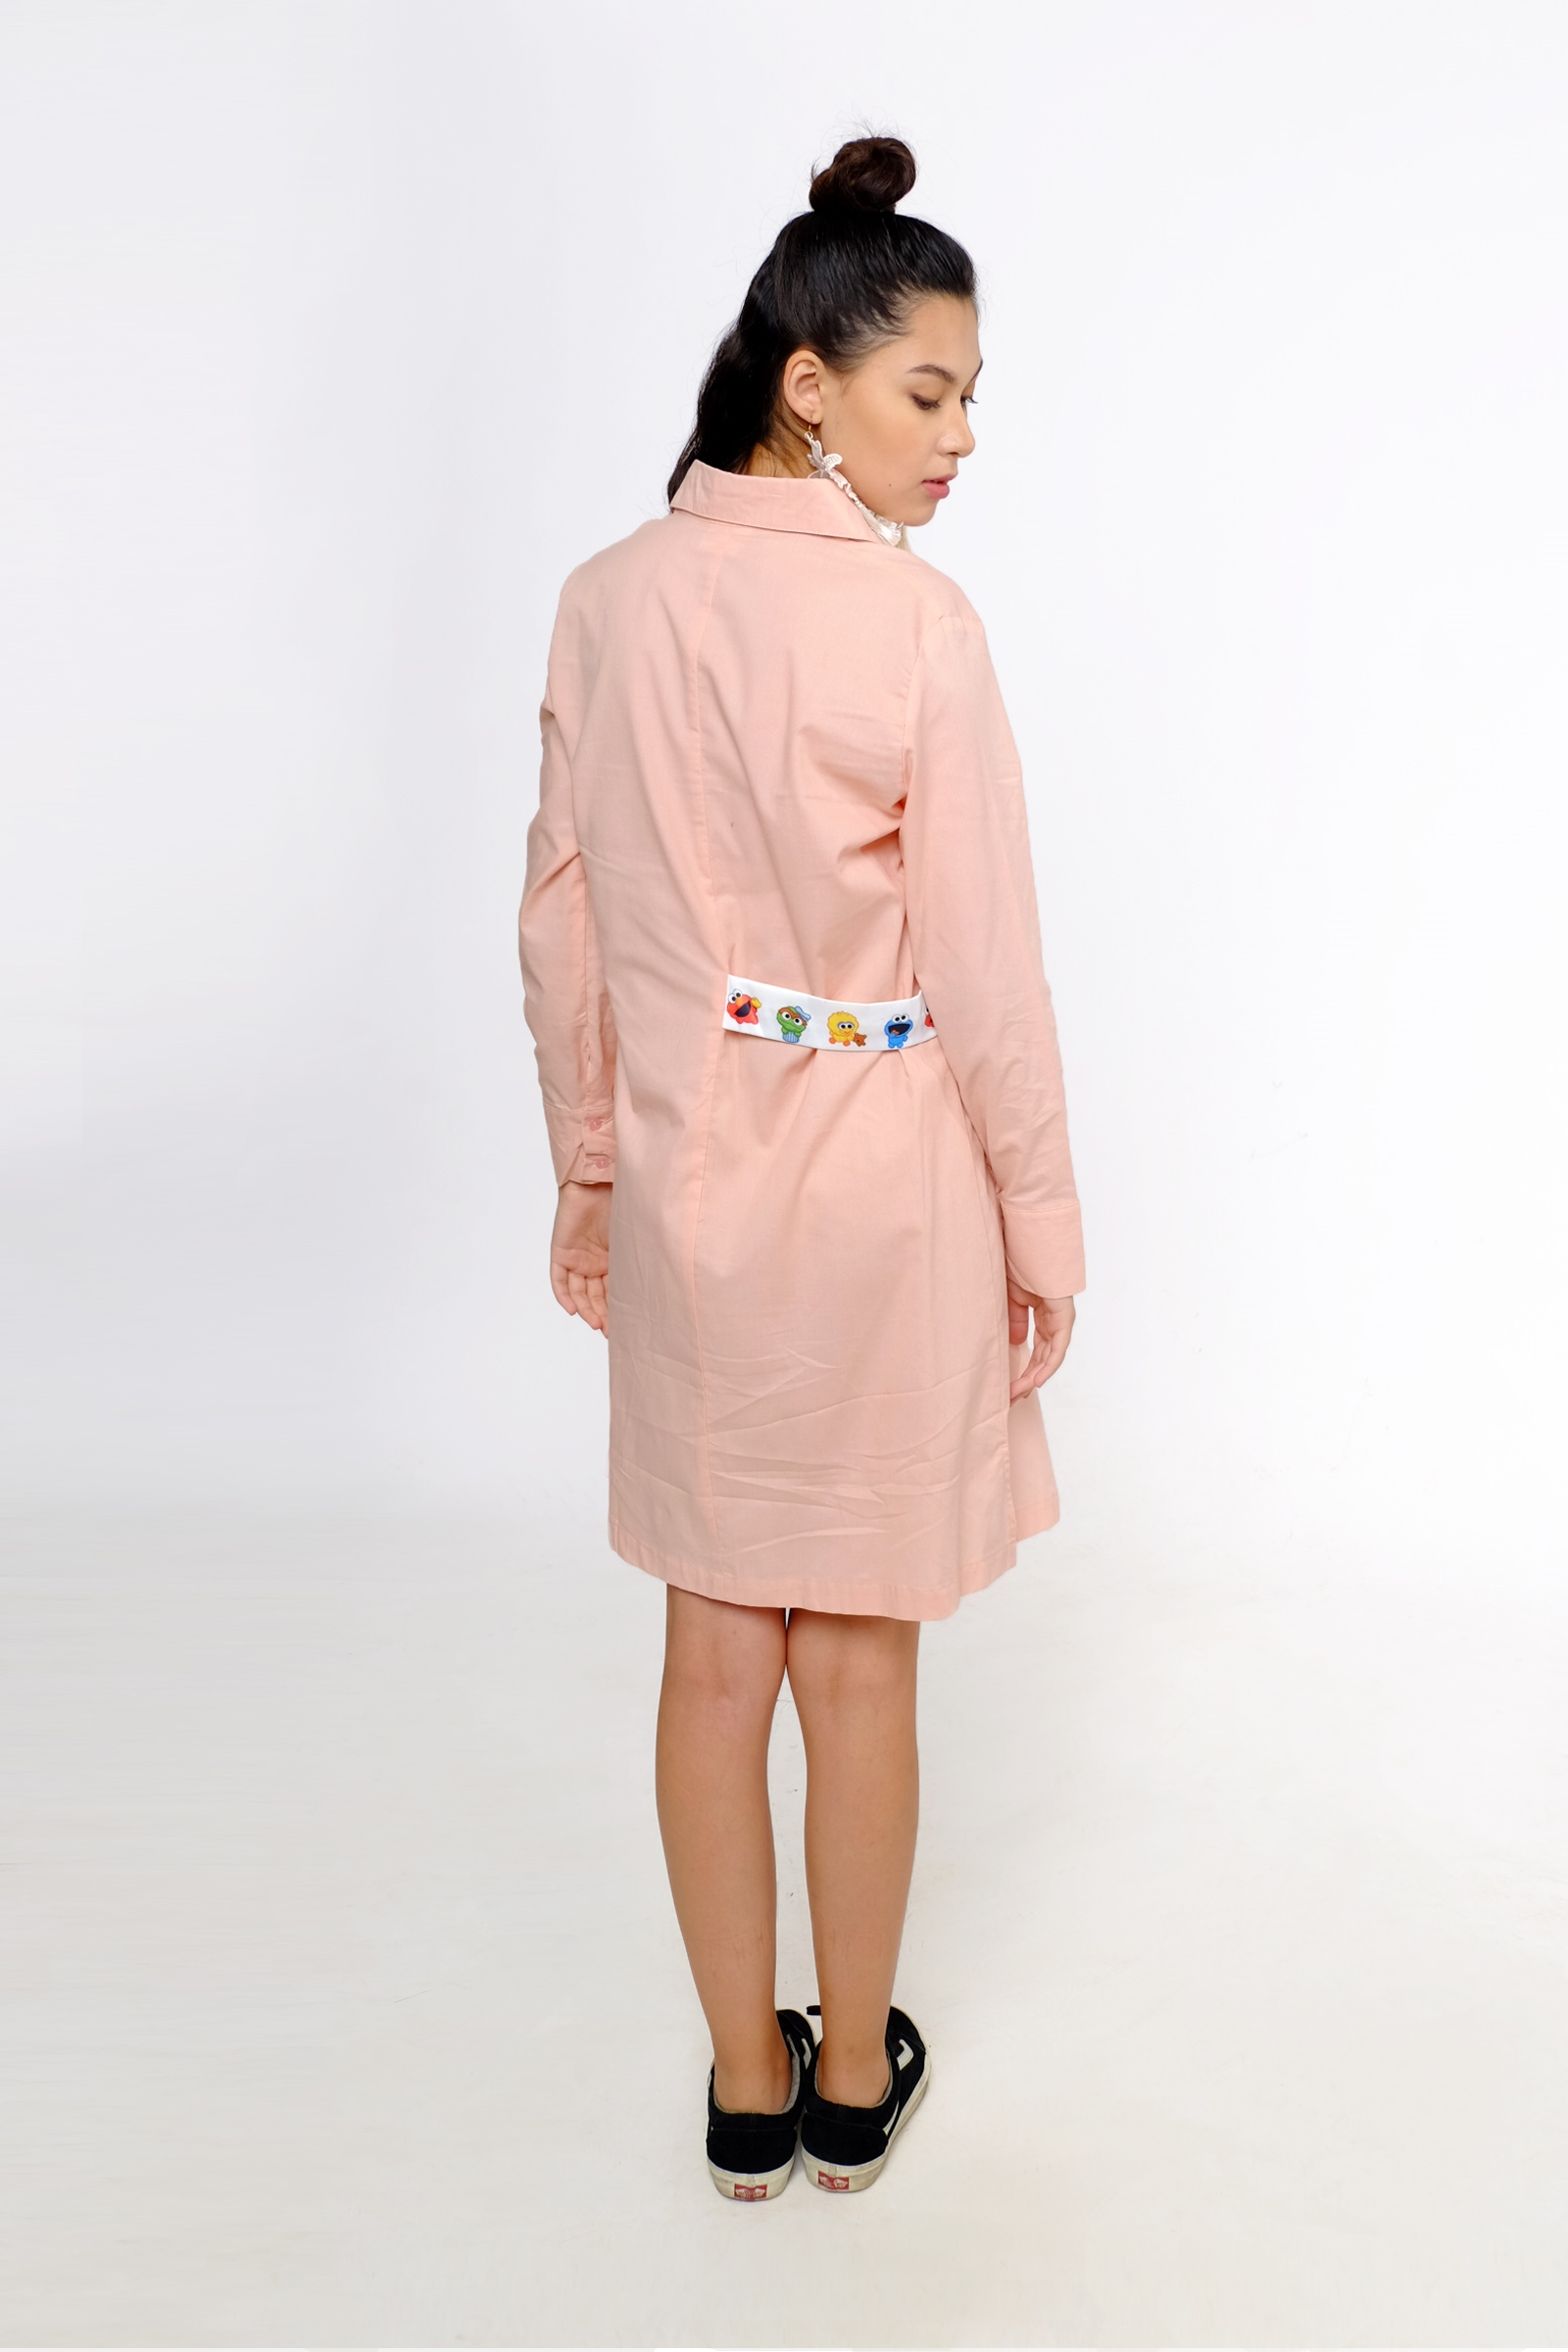 Picture of Lawrence Dress Pink Pastel